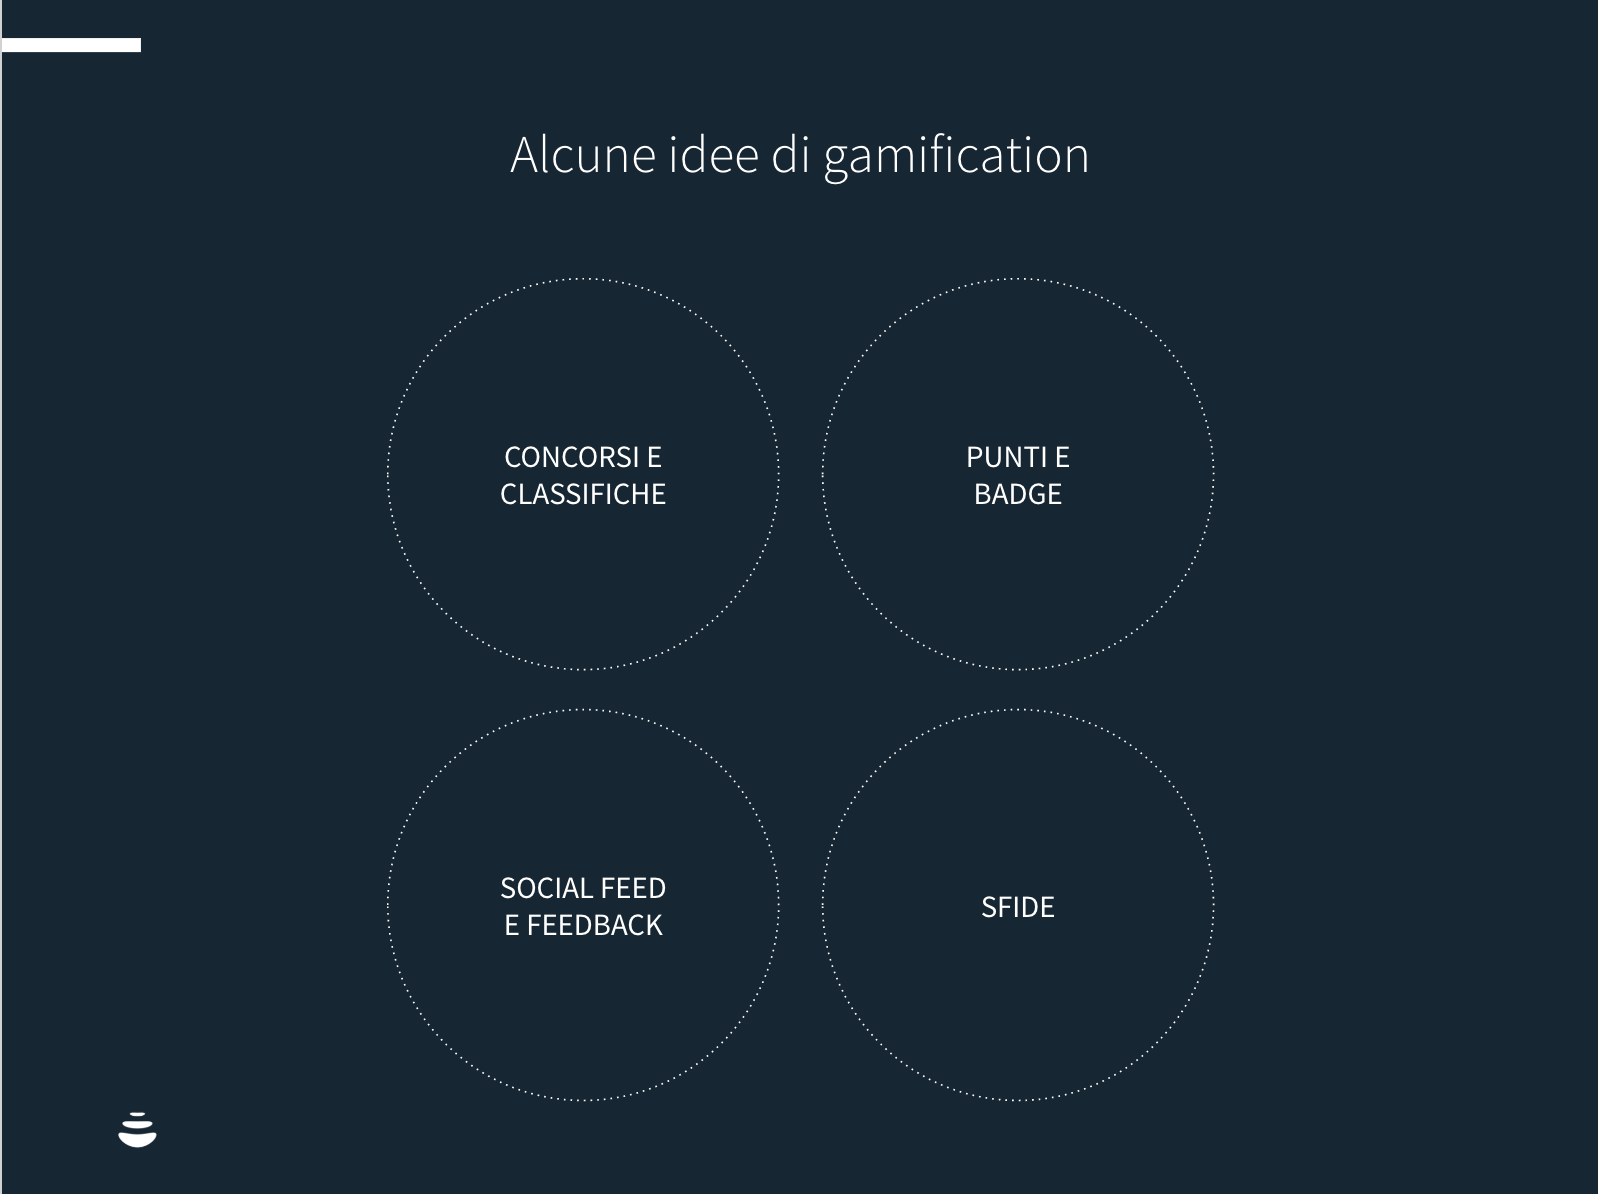 idee gamification